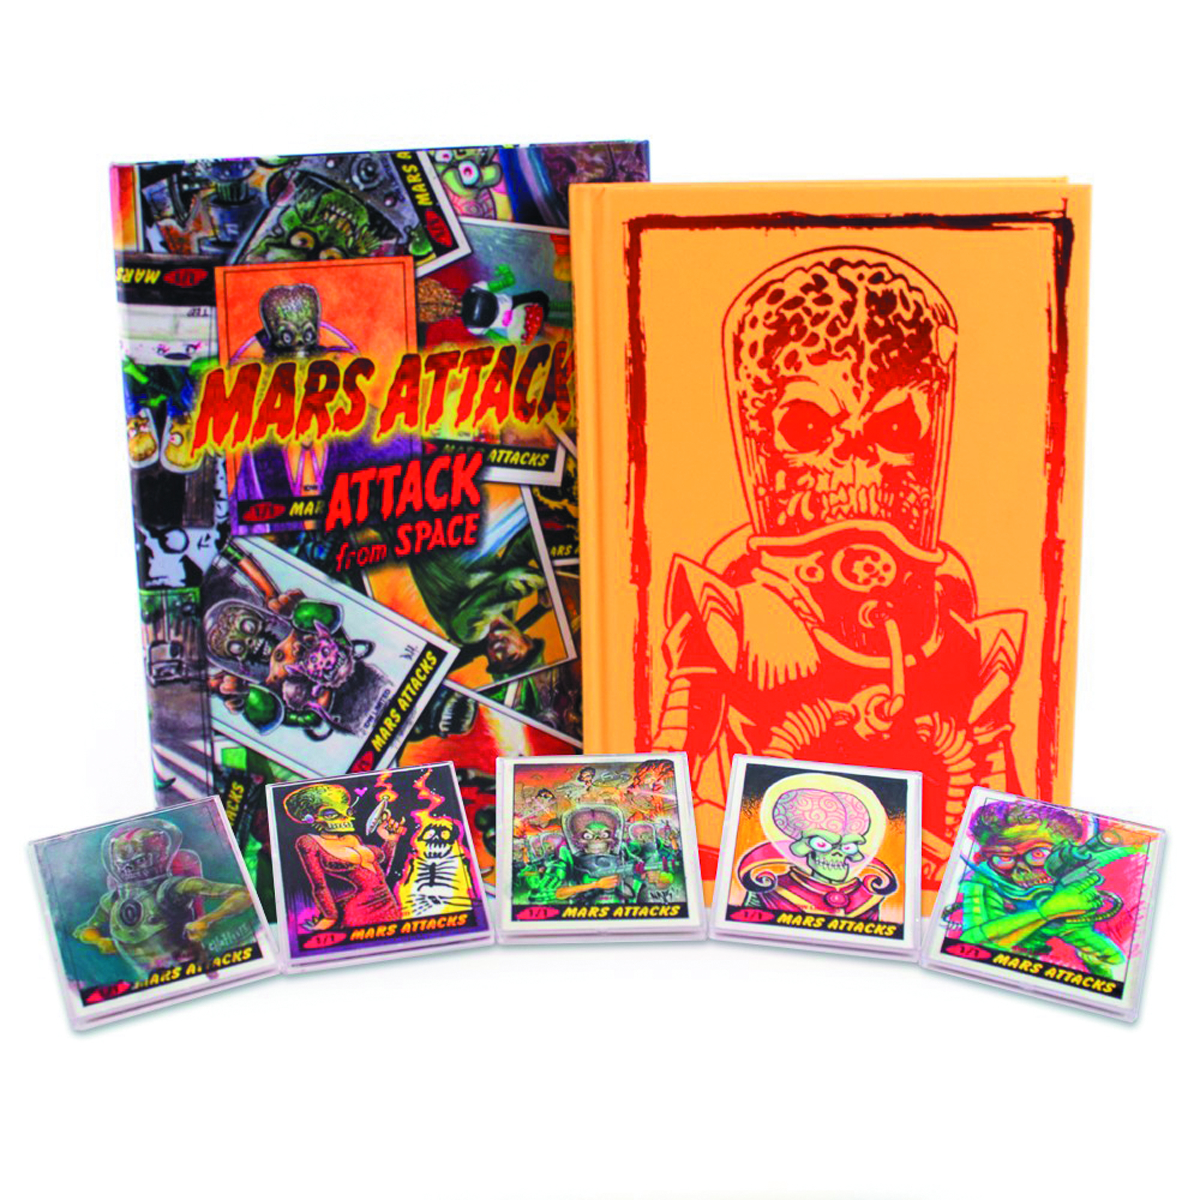 MARS ATTACKS ATTACK FROM SPACE LTD DLX HC